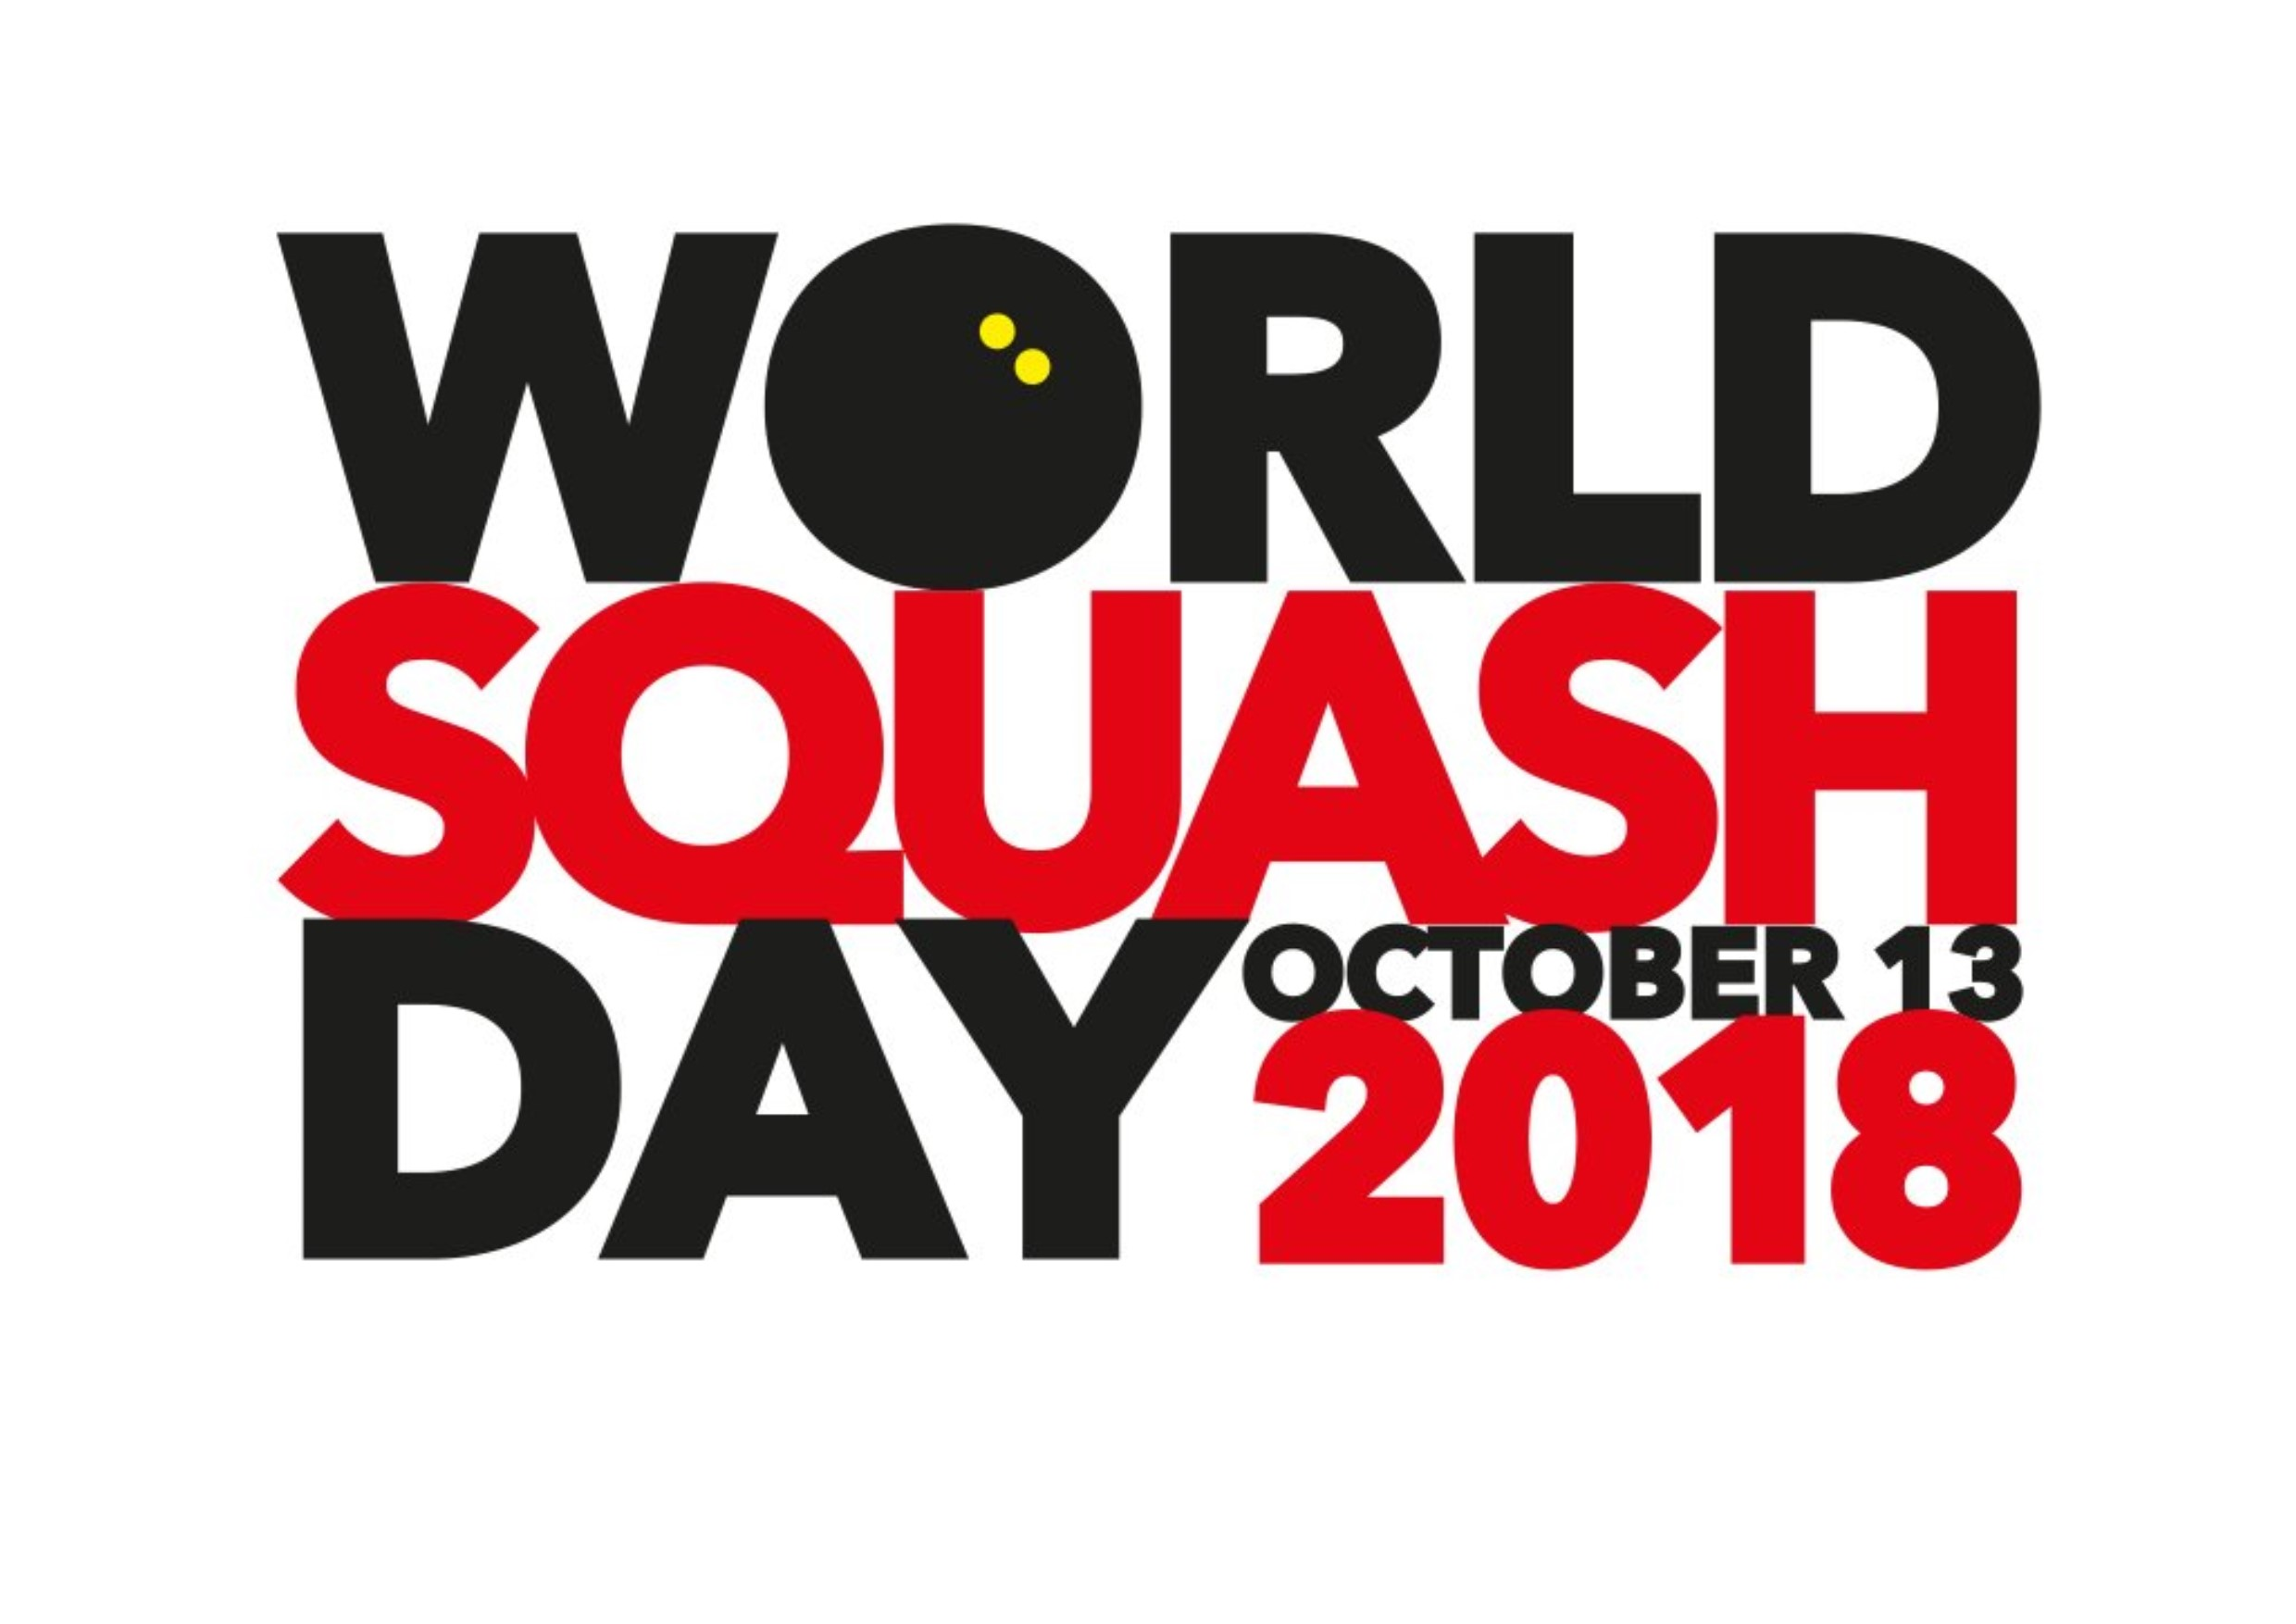 Lexden hit the road to support World Squash Day